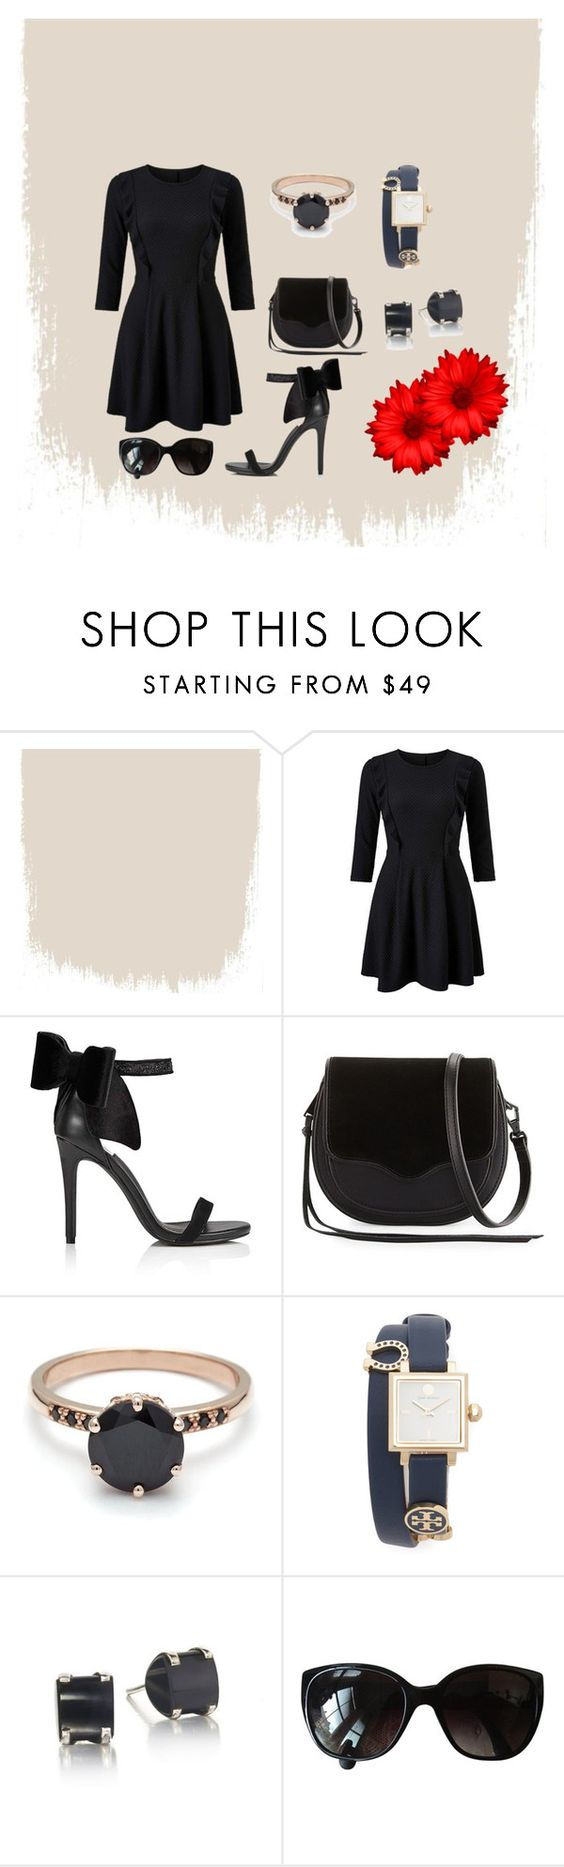 """""""Chique"""" by megeller on Polyvore featuring moda, Miss Selfridge, Rebecca Minkoff, Tory Burch e Chanel"""